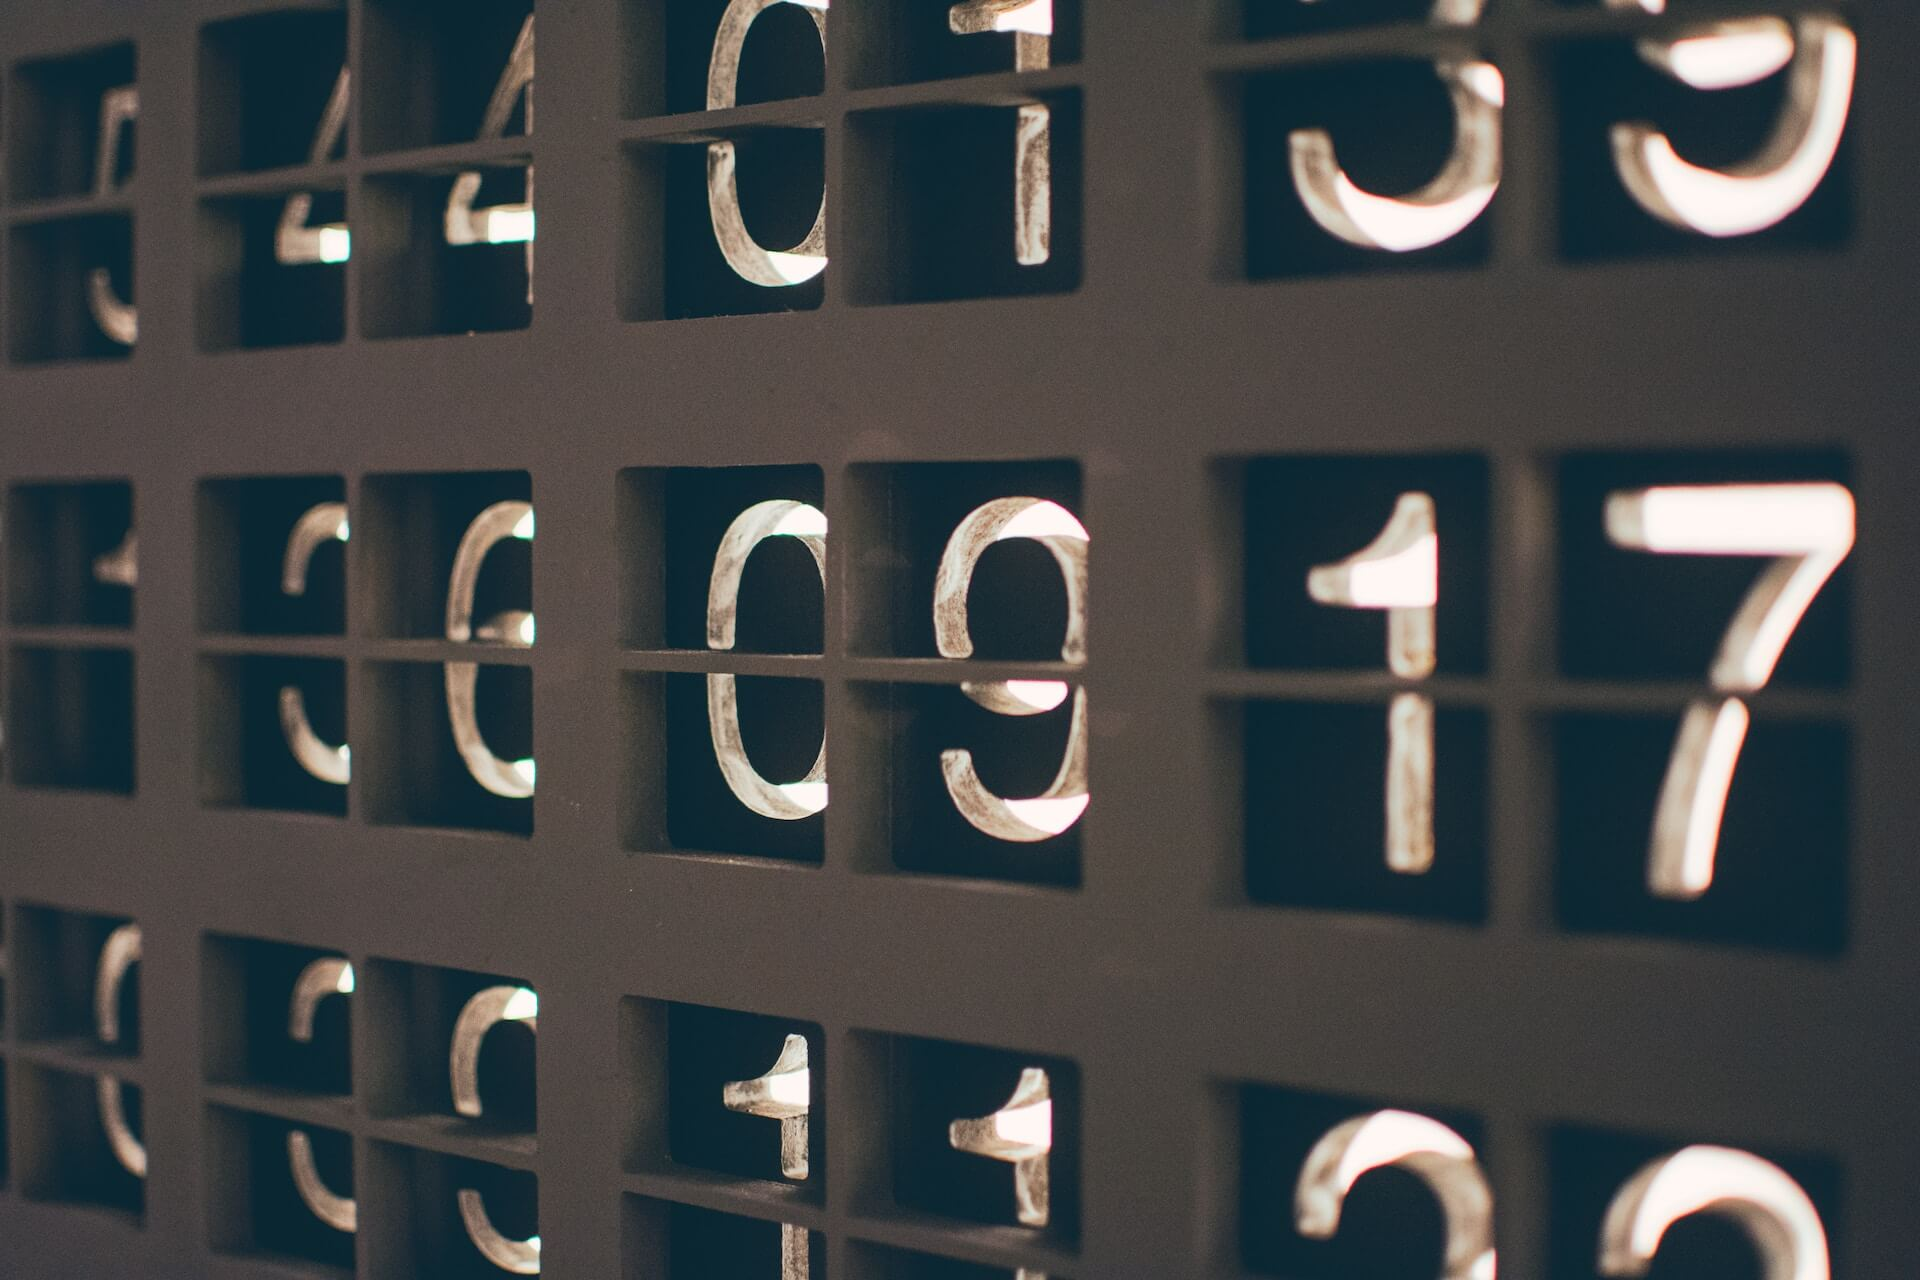 Analog numbers in white against a black background